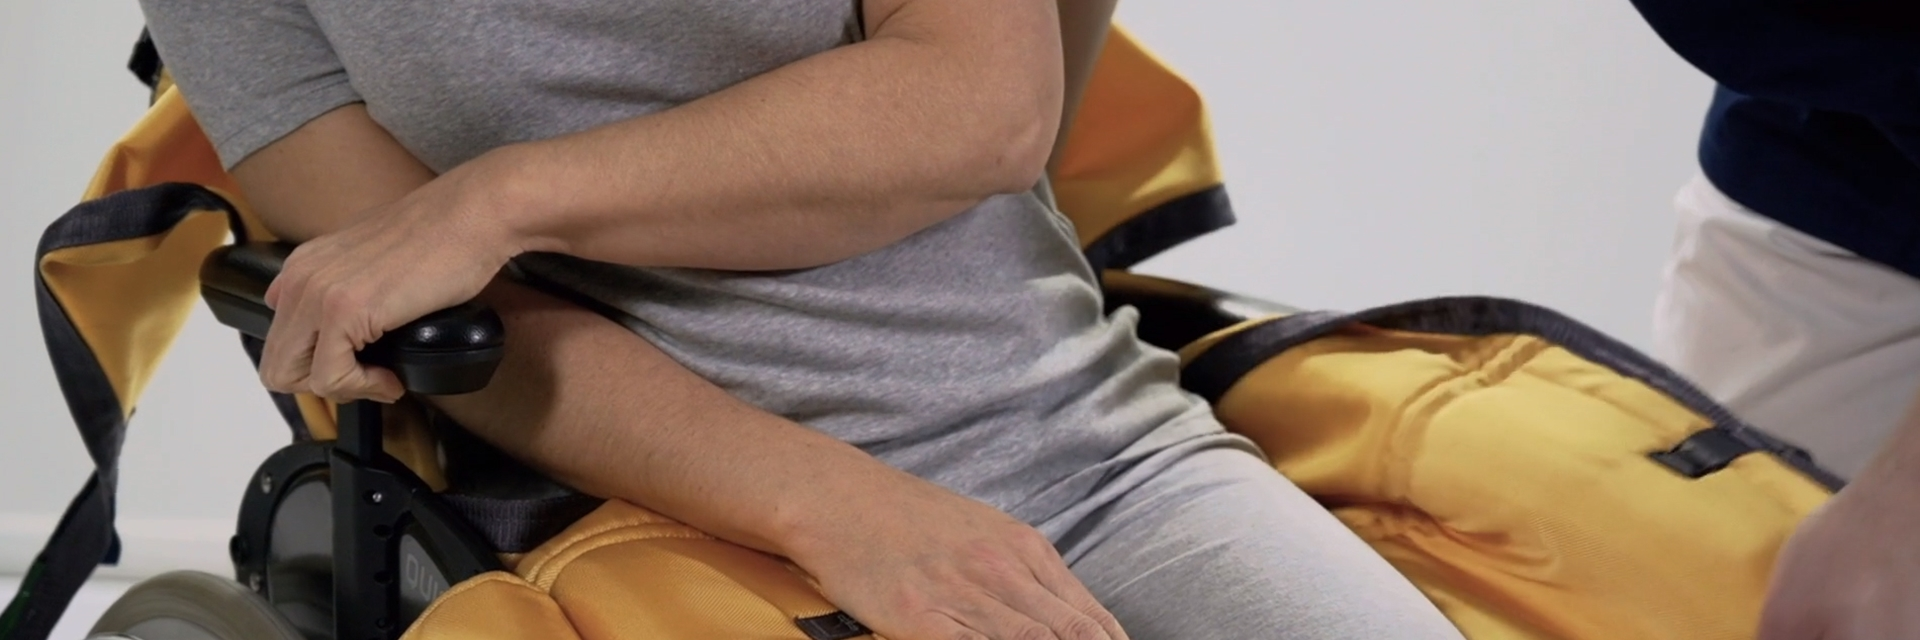 Basic Comfort High - Sling on-off in wheelchair